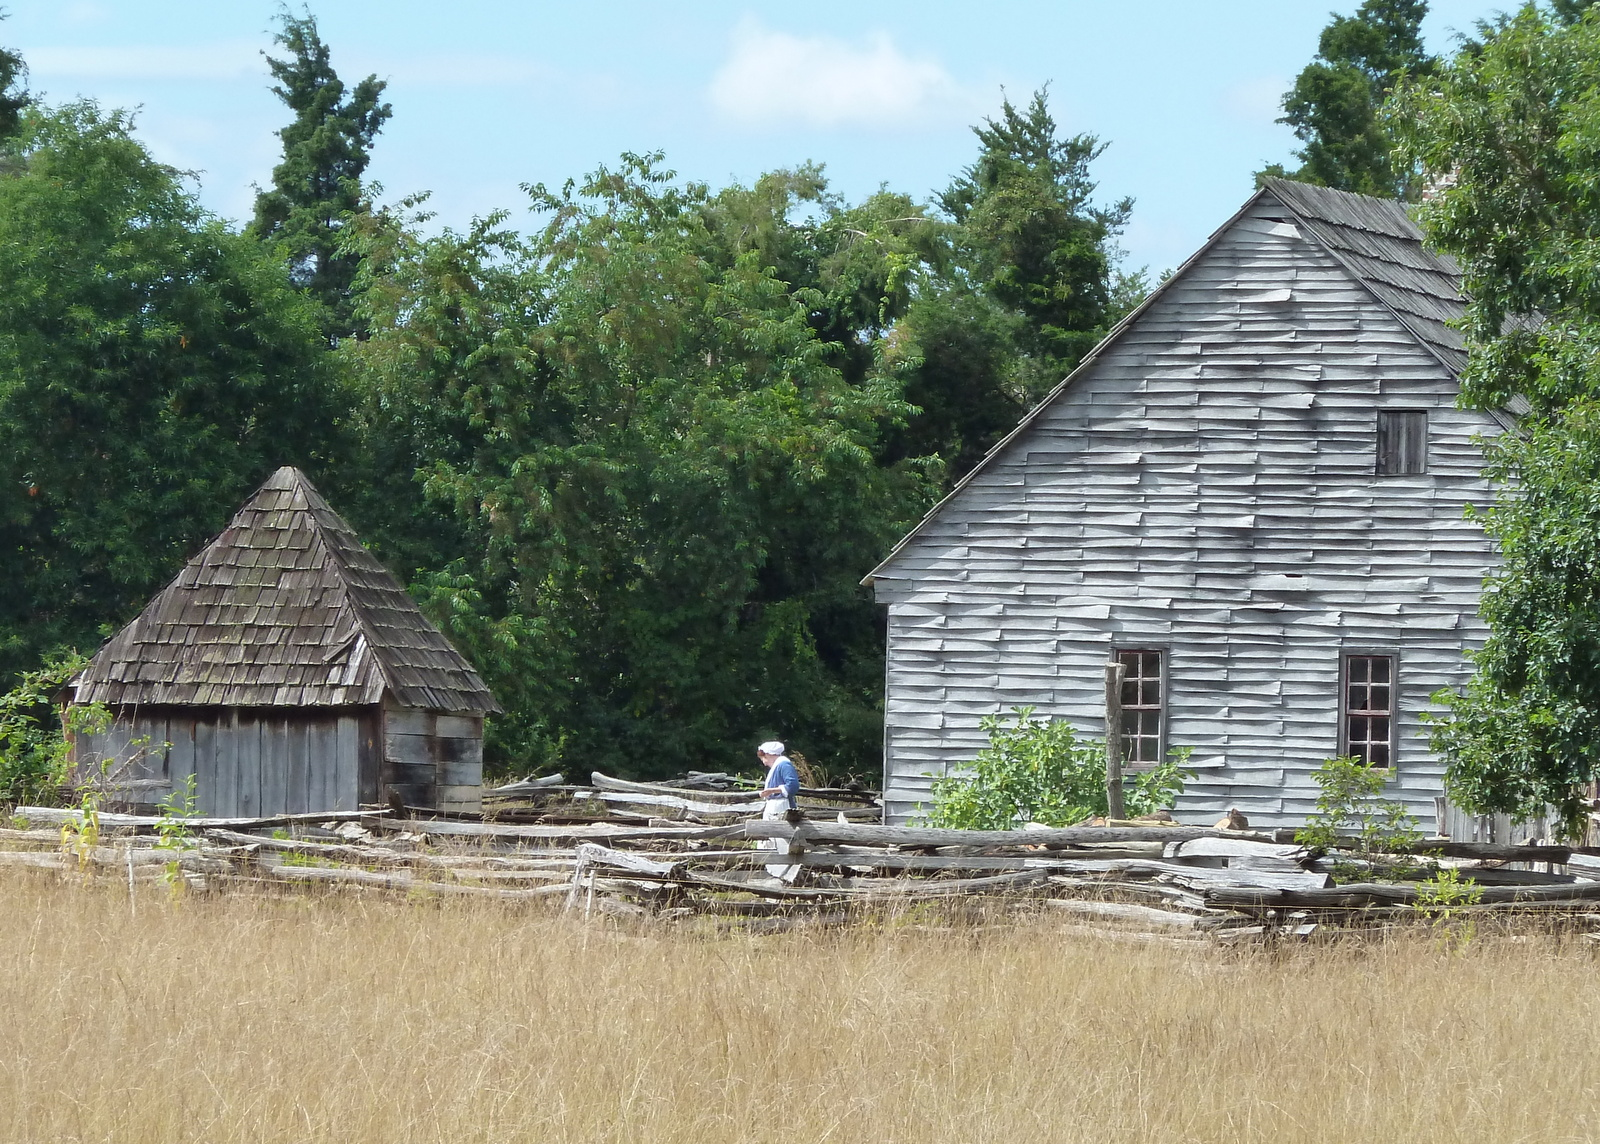 Some structures featured at the farm